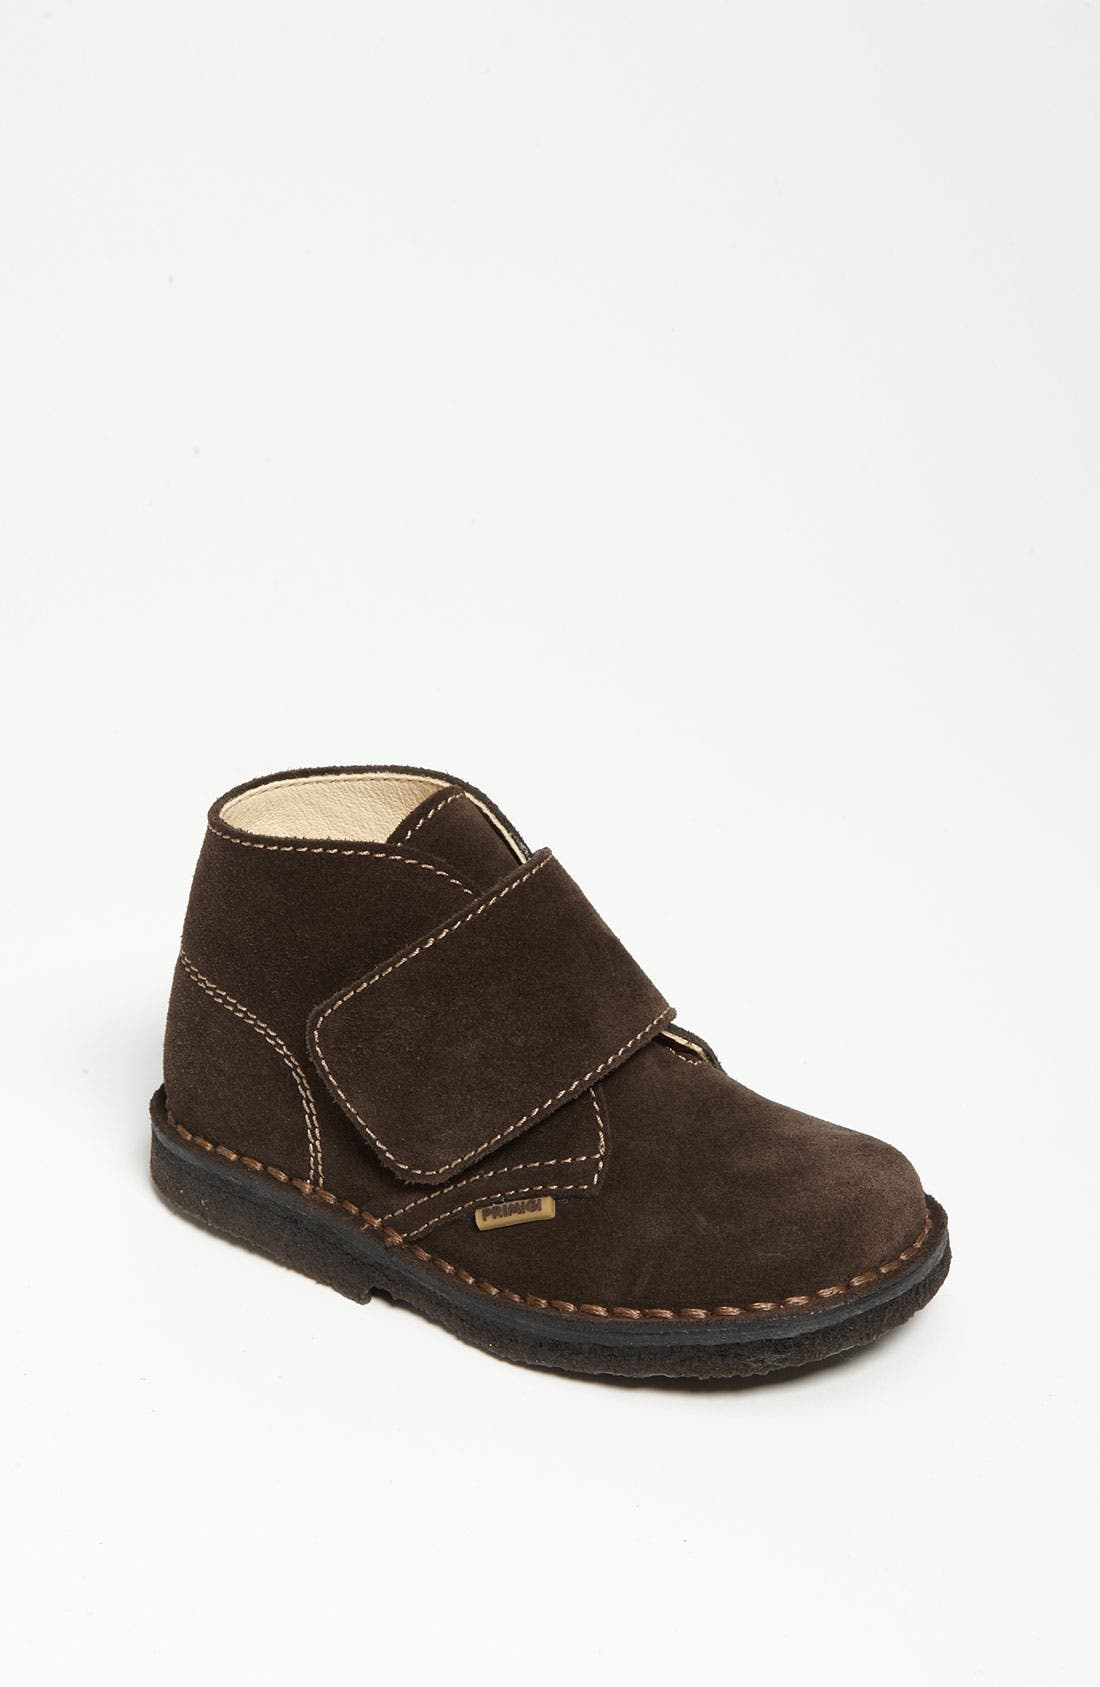 Alternate Image 1 Selected - Primigi 'Groungy' Boot (Toddler)